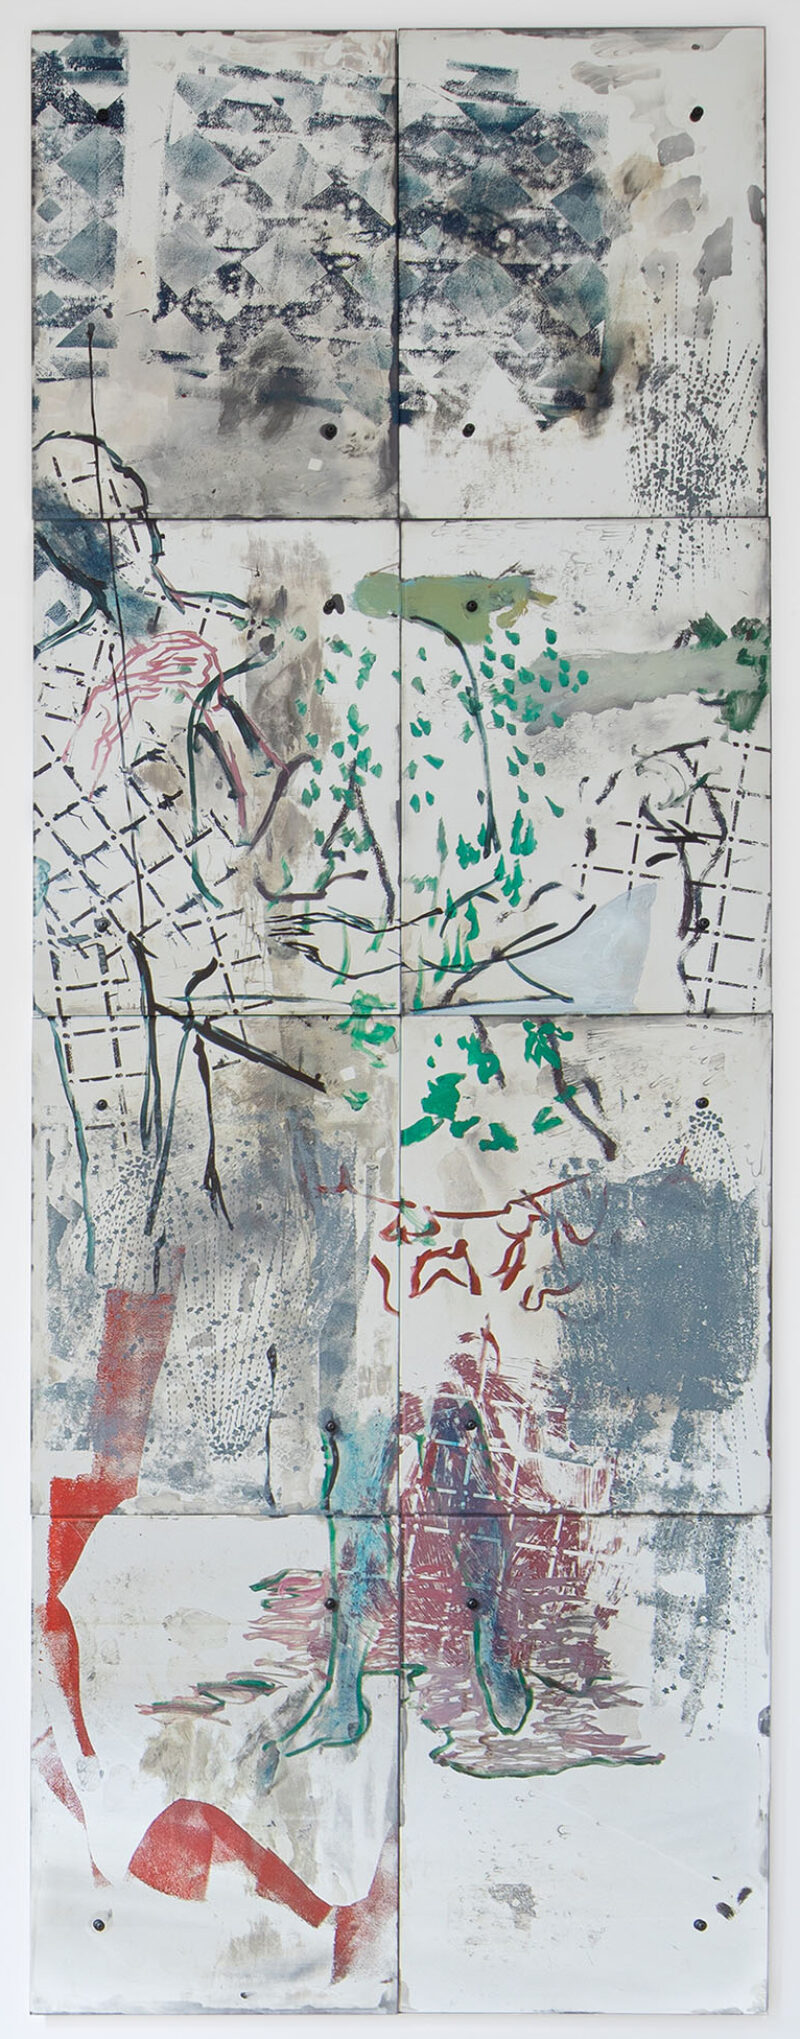 Image of Elision by Nick Mauss